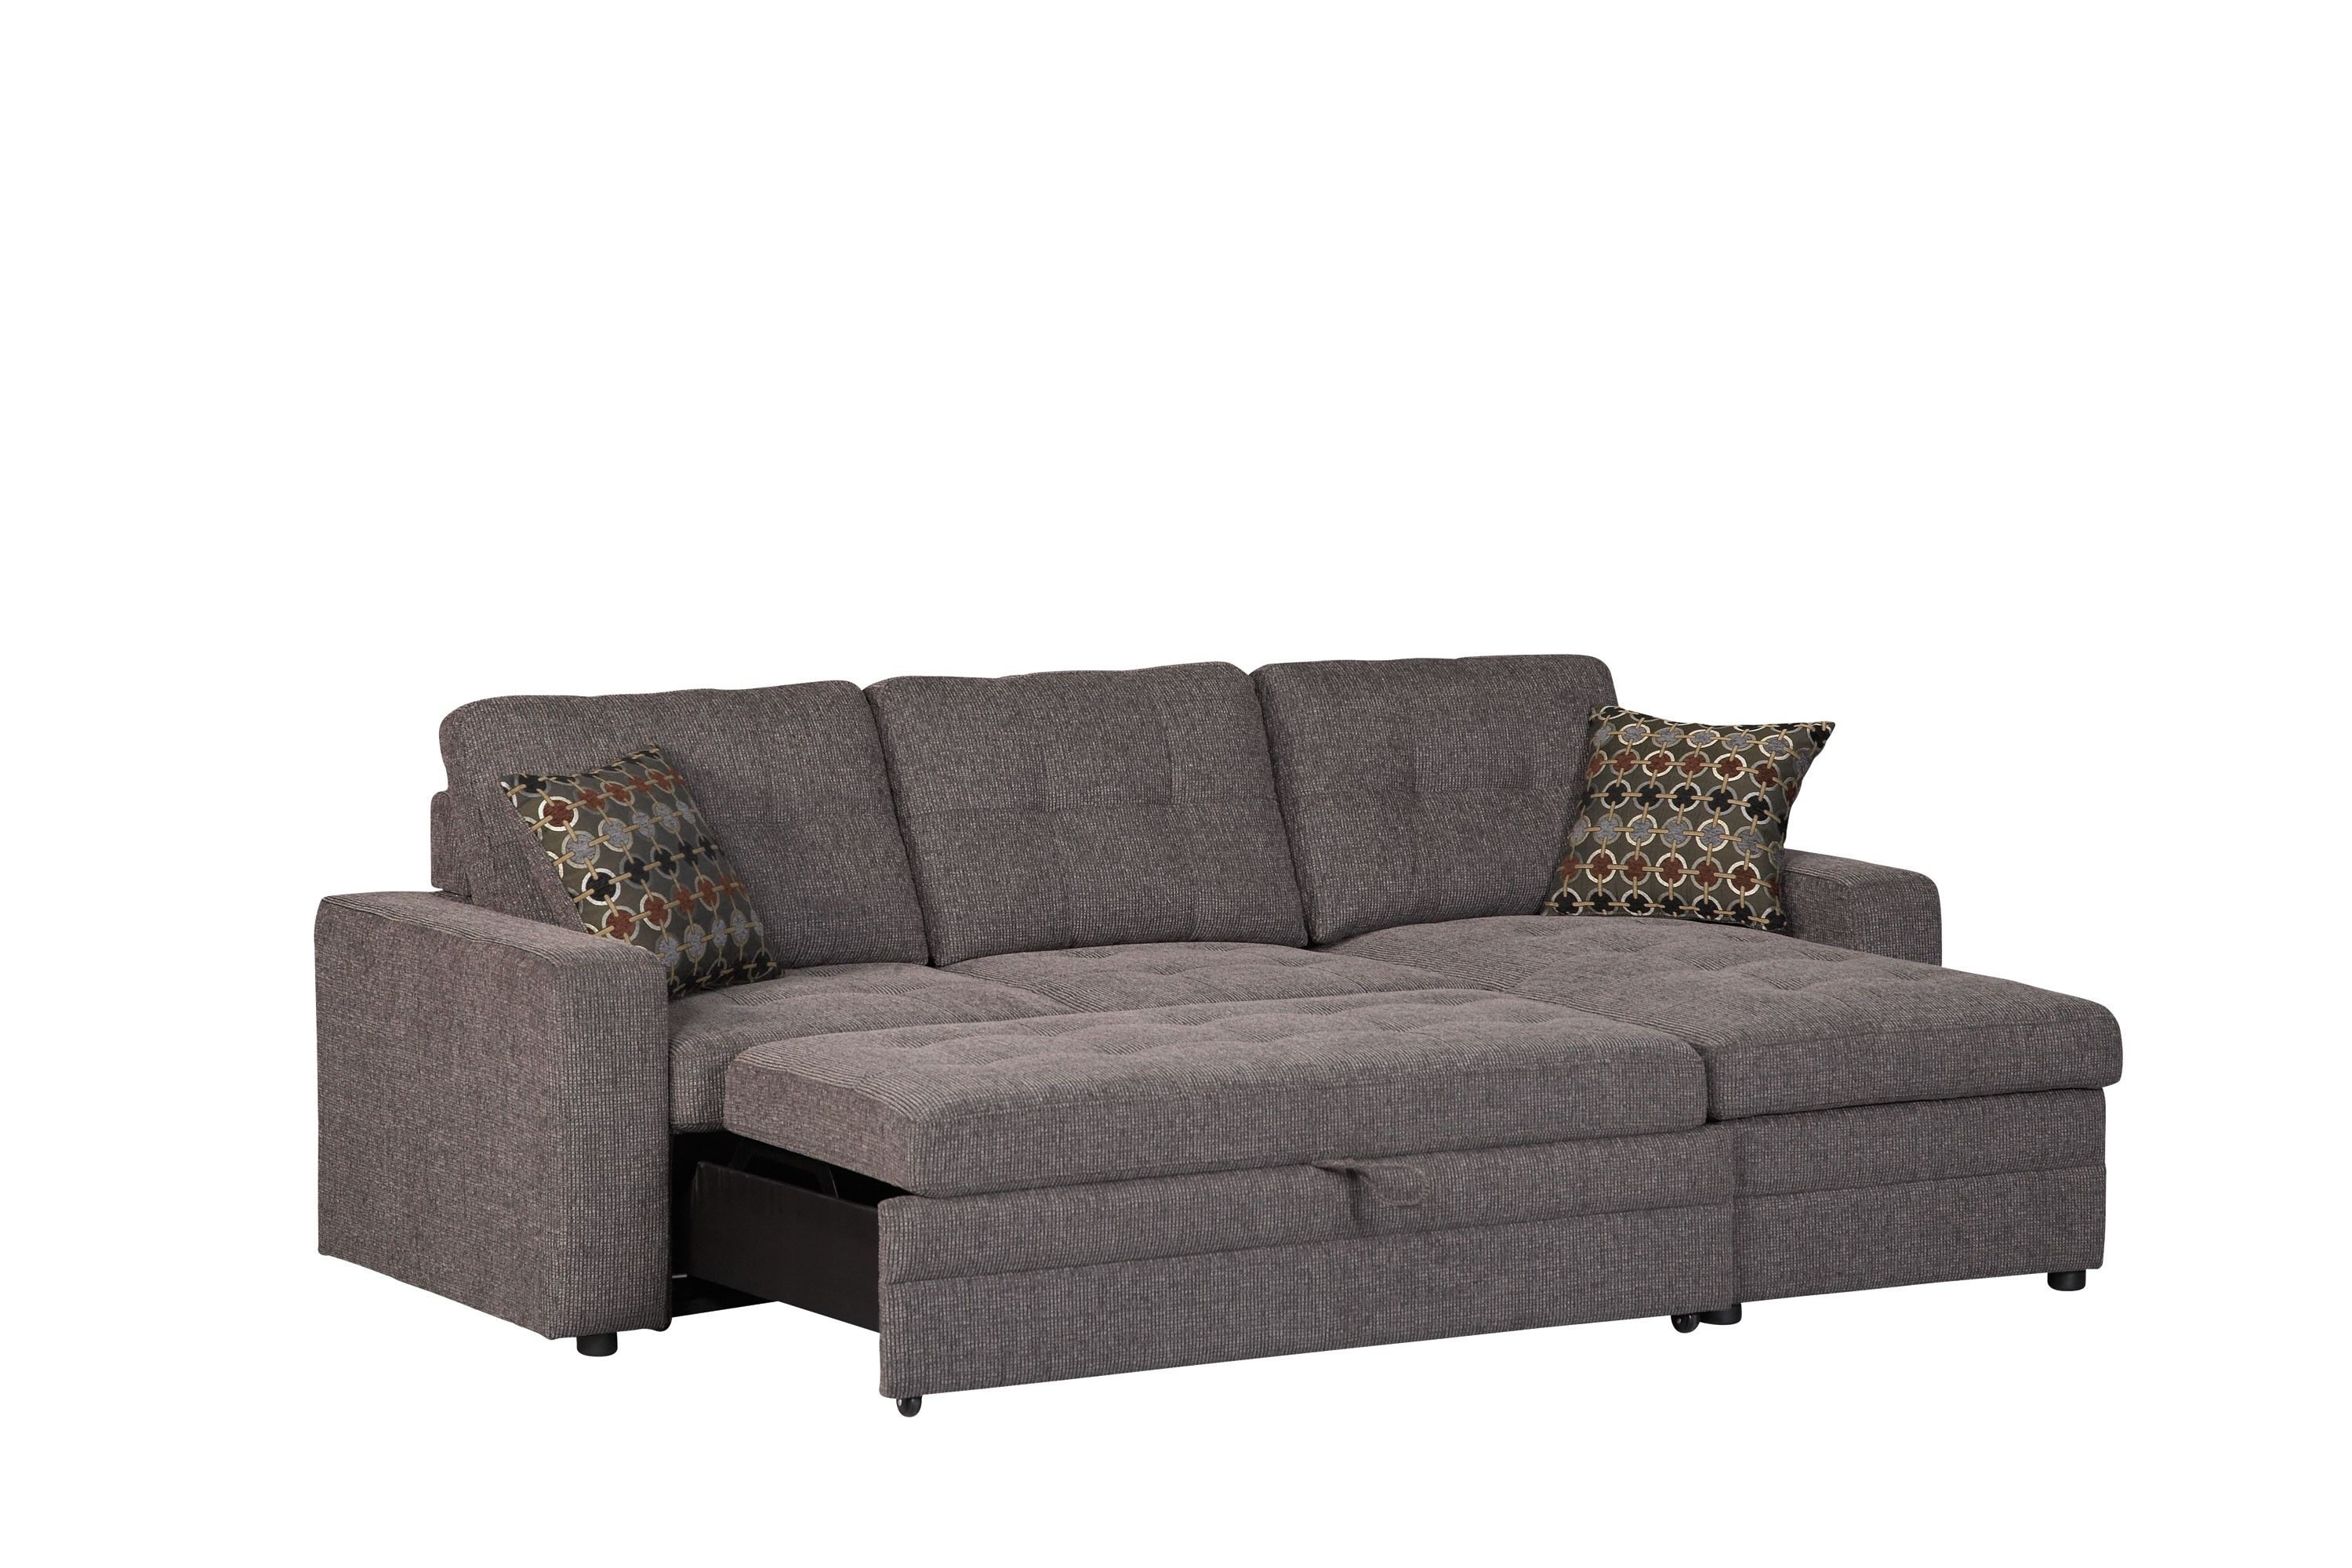 Gray Sectional Bed Small Sleeper Sofa Sectional Sleeper Sofa Small Sectional Sofa